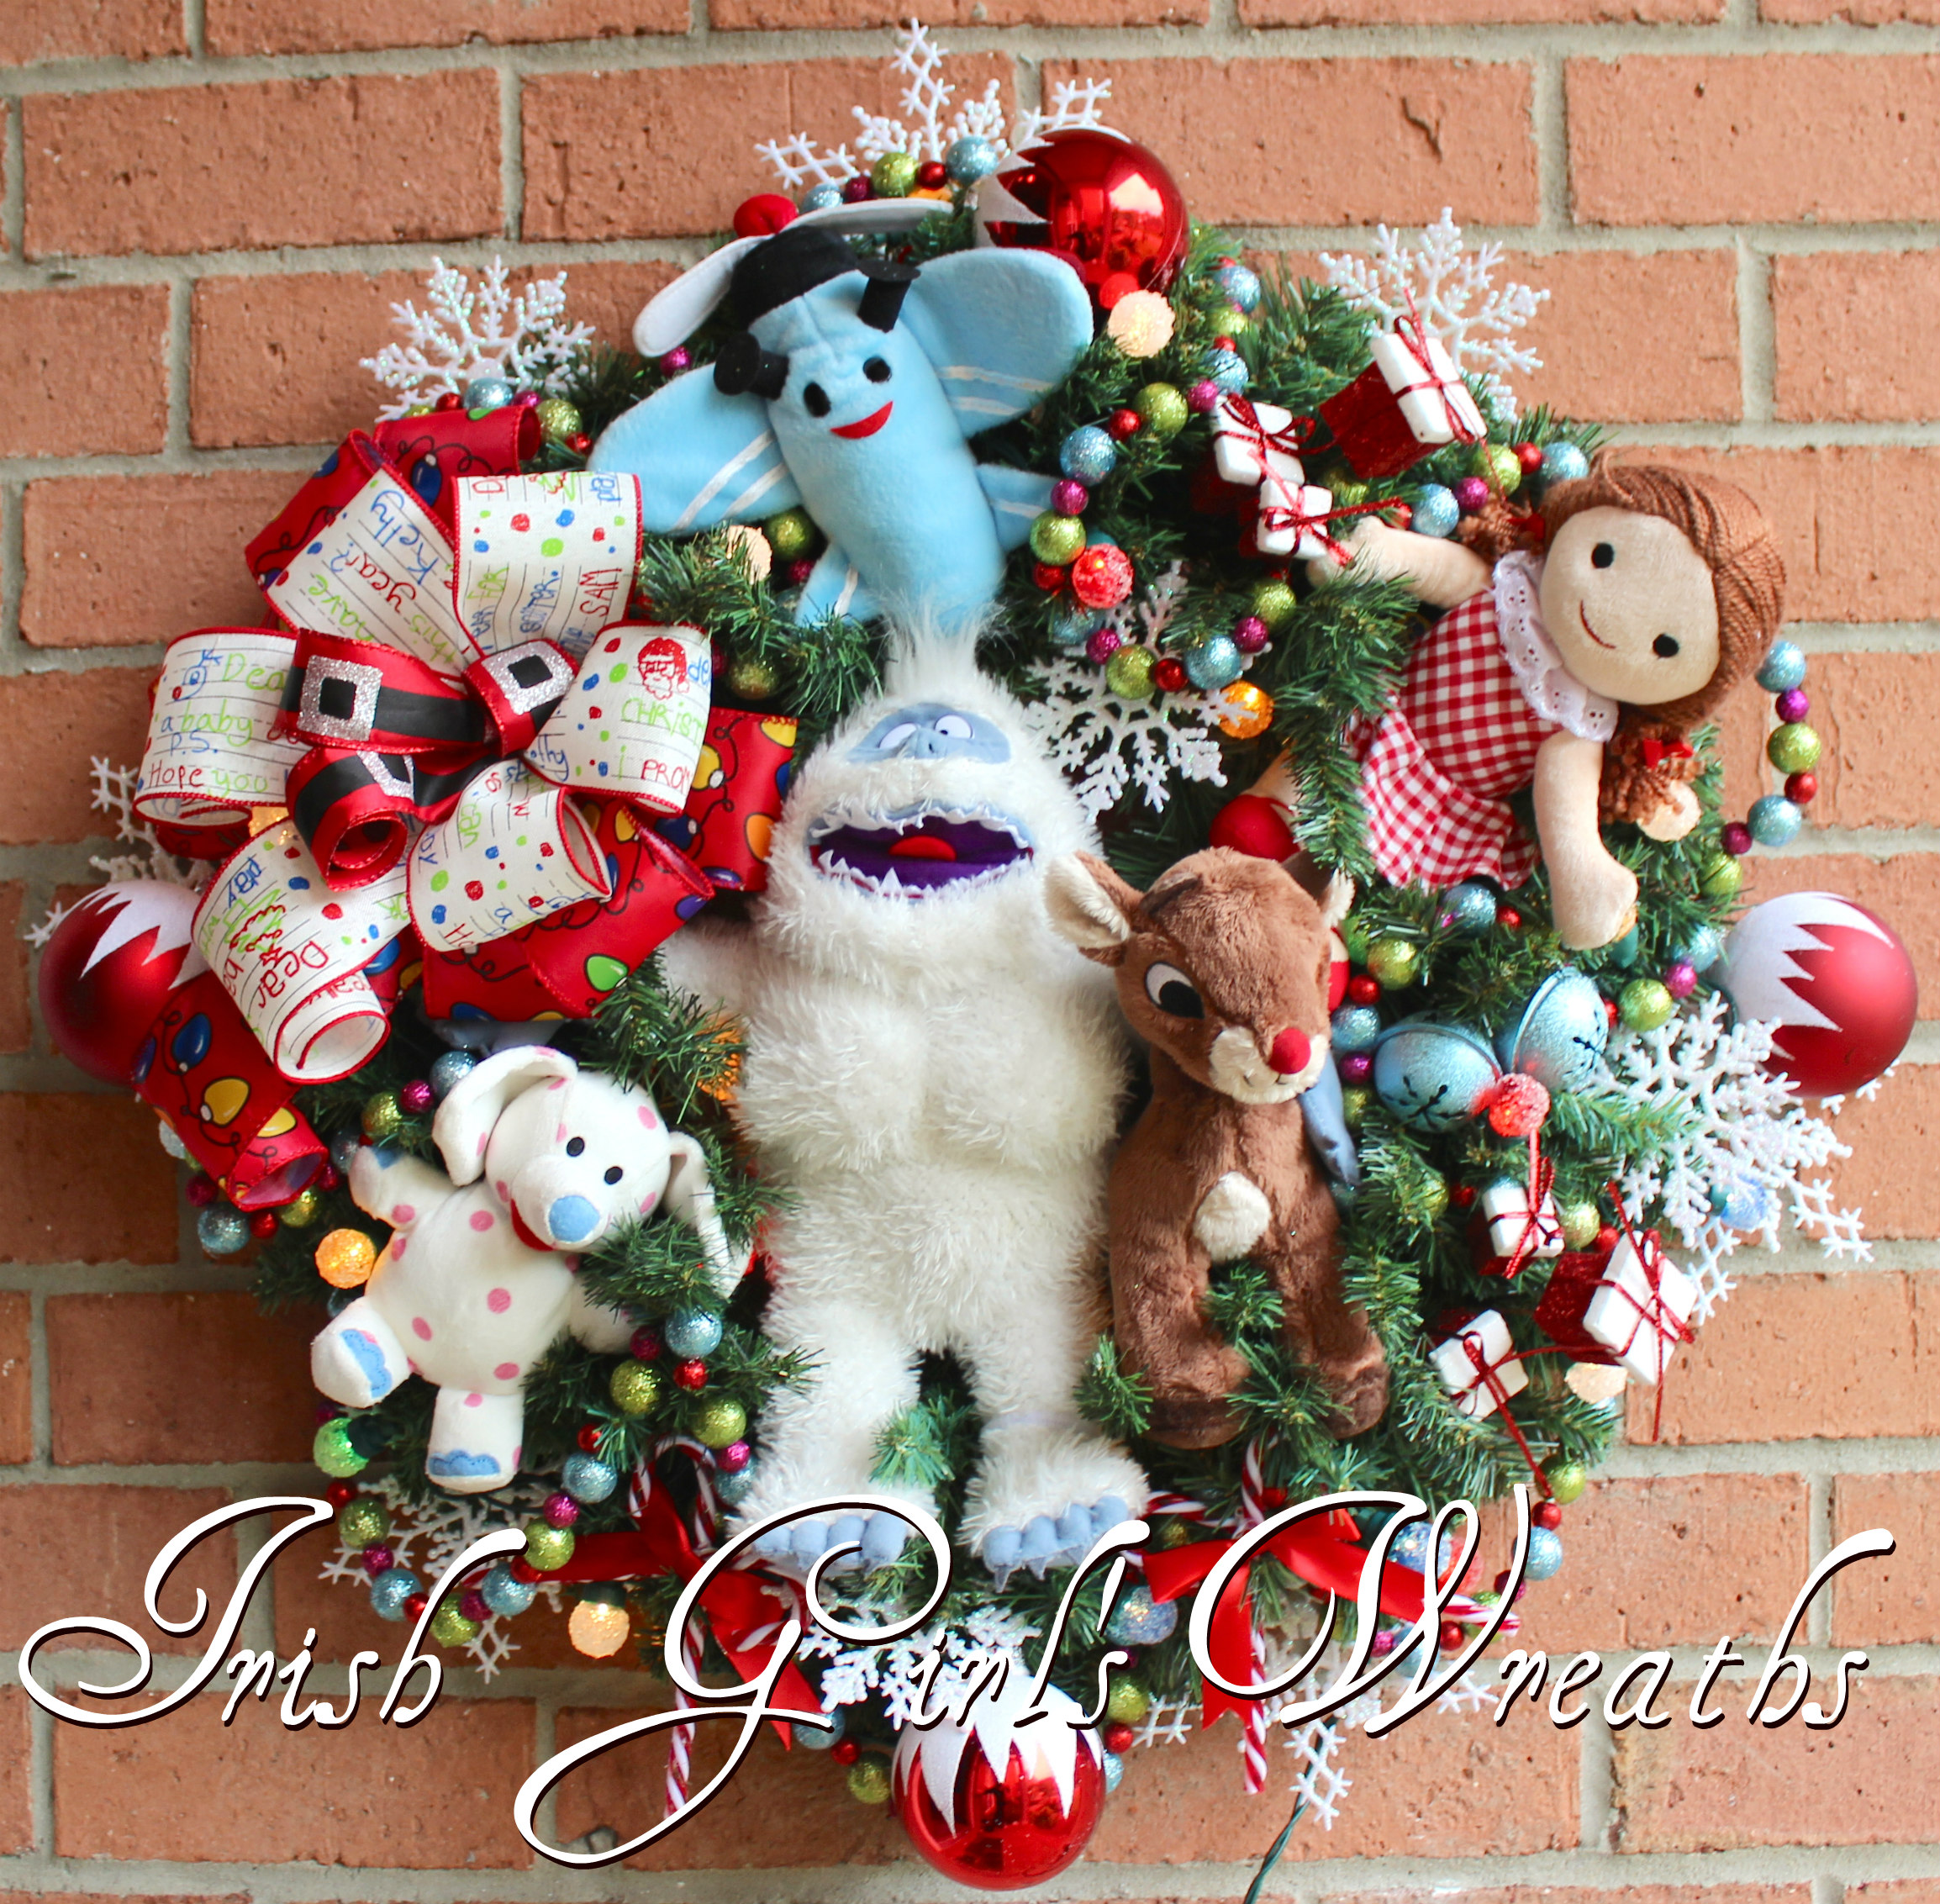 Bumble Snow Monster – Rudolph and Misfit Toys Wreath, Custom for Crystal